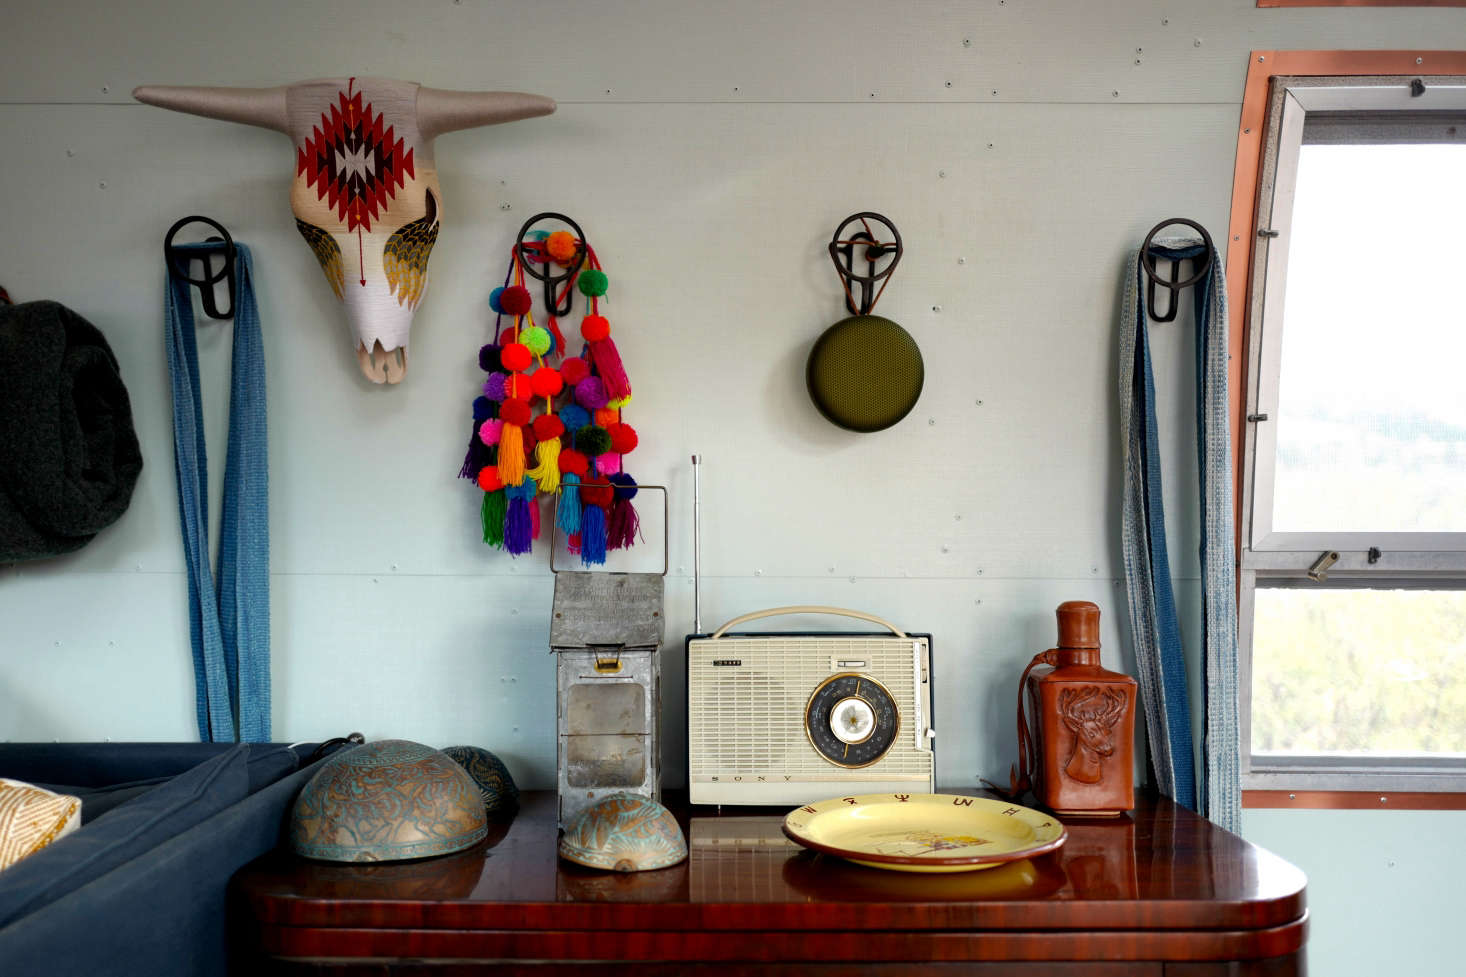 The interior walls and credenza top are painted a subtle mint that Jorge notes is two shades lighter than the classic Land Rover color. (Land Rovers are another of his passions.) Circular bronze sombrero hooks–Gancho de Bronce Modelo Aro from Mexican hardware company Counter Cultures—are used as catchalls.